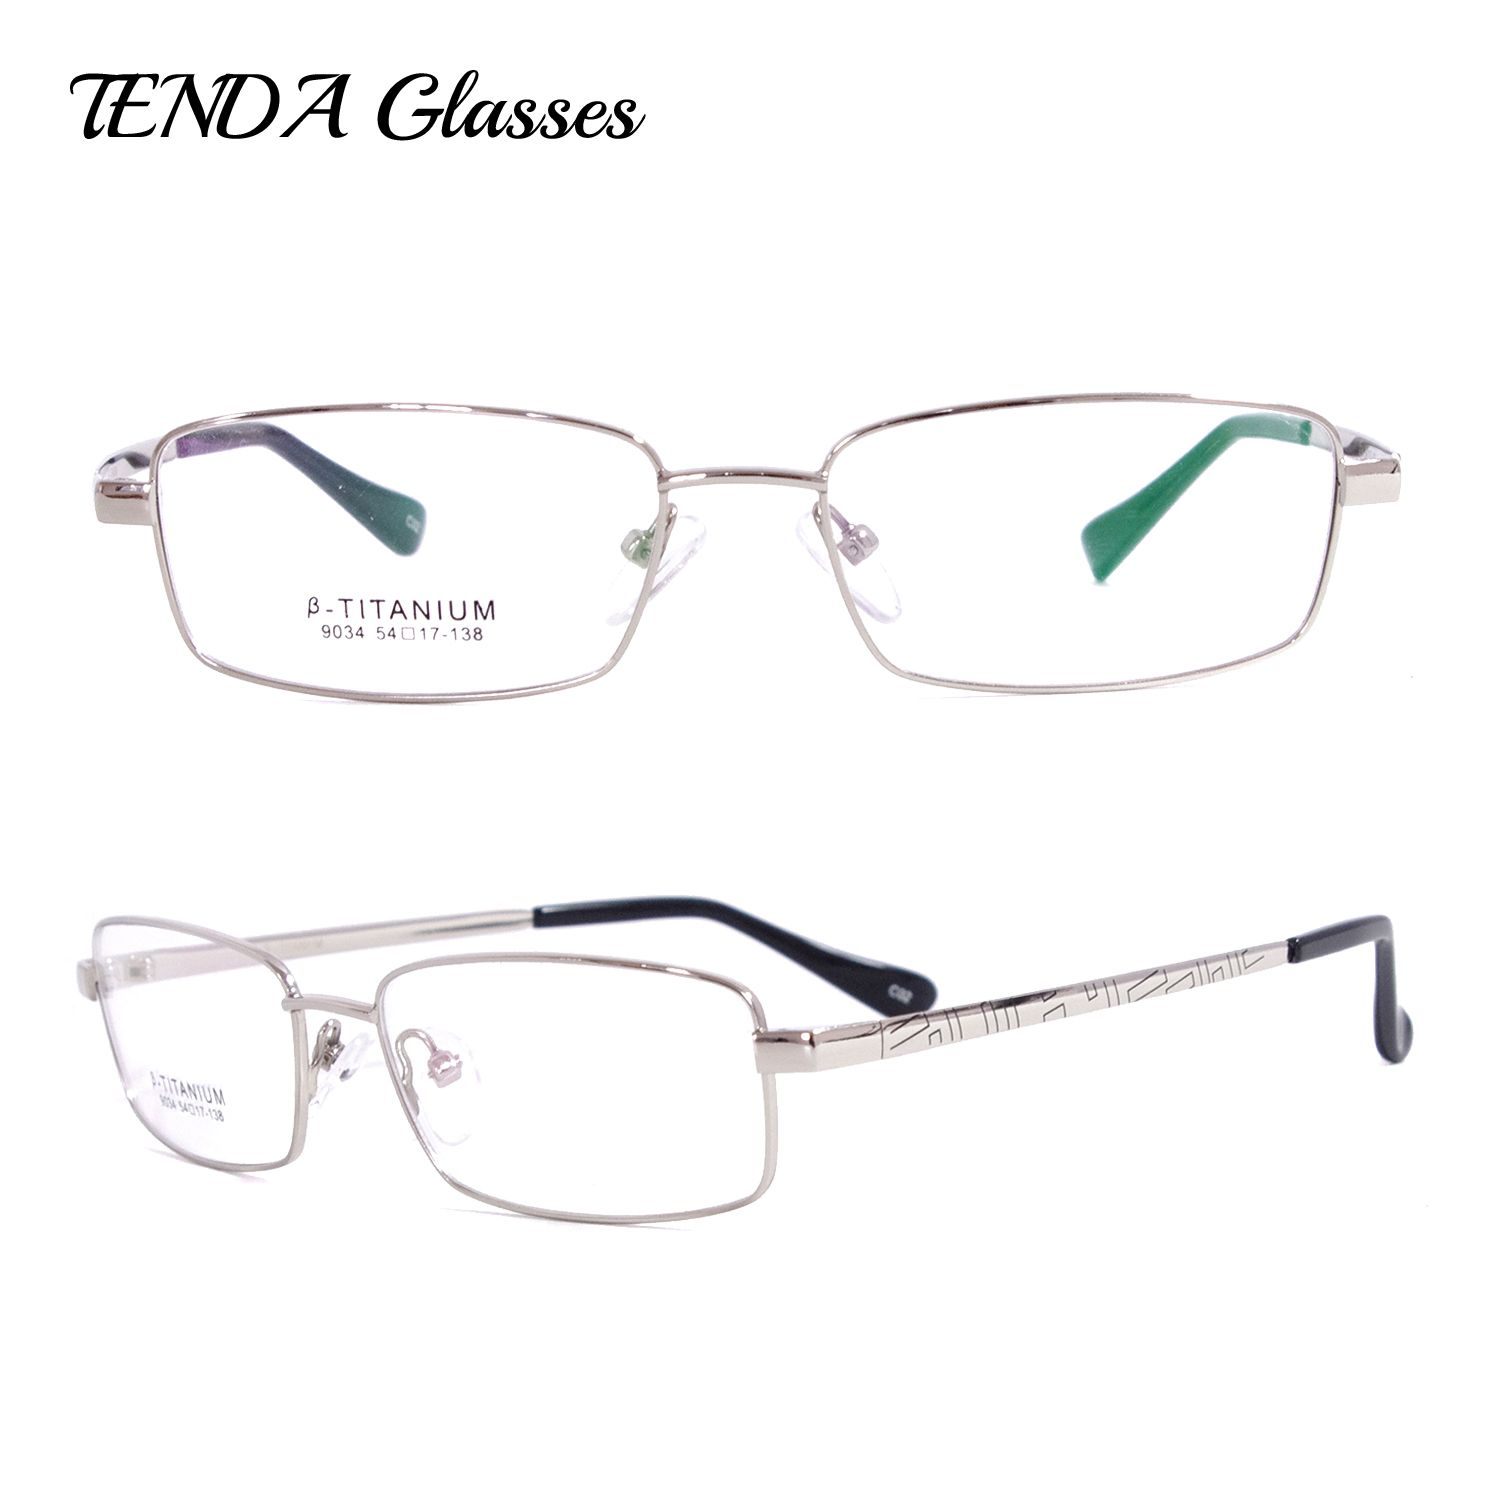 Titanium Flexible Eyeglass Frames Myopia Glasses Men Eyewear Frames ...